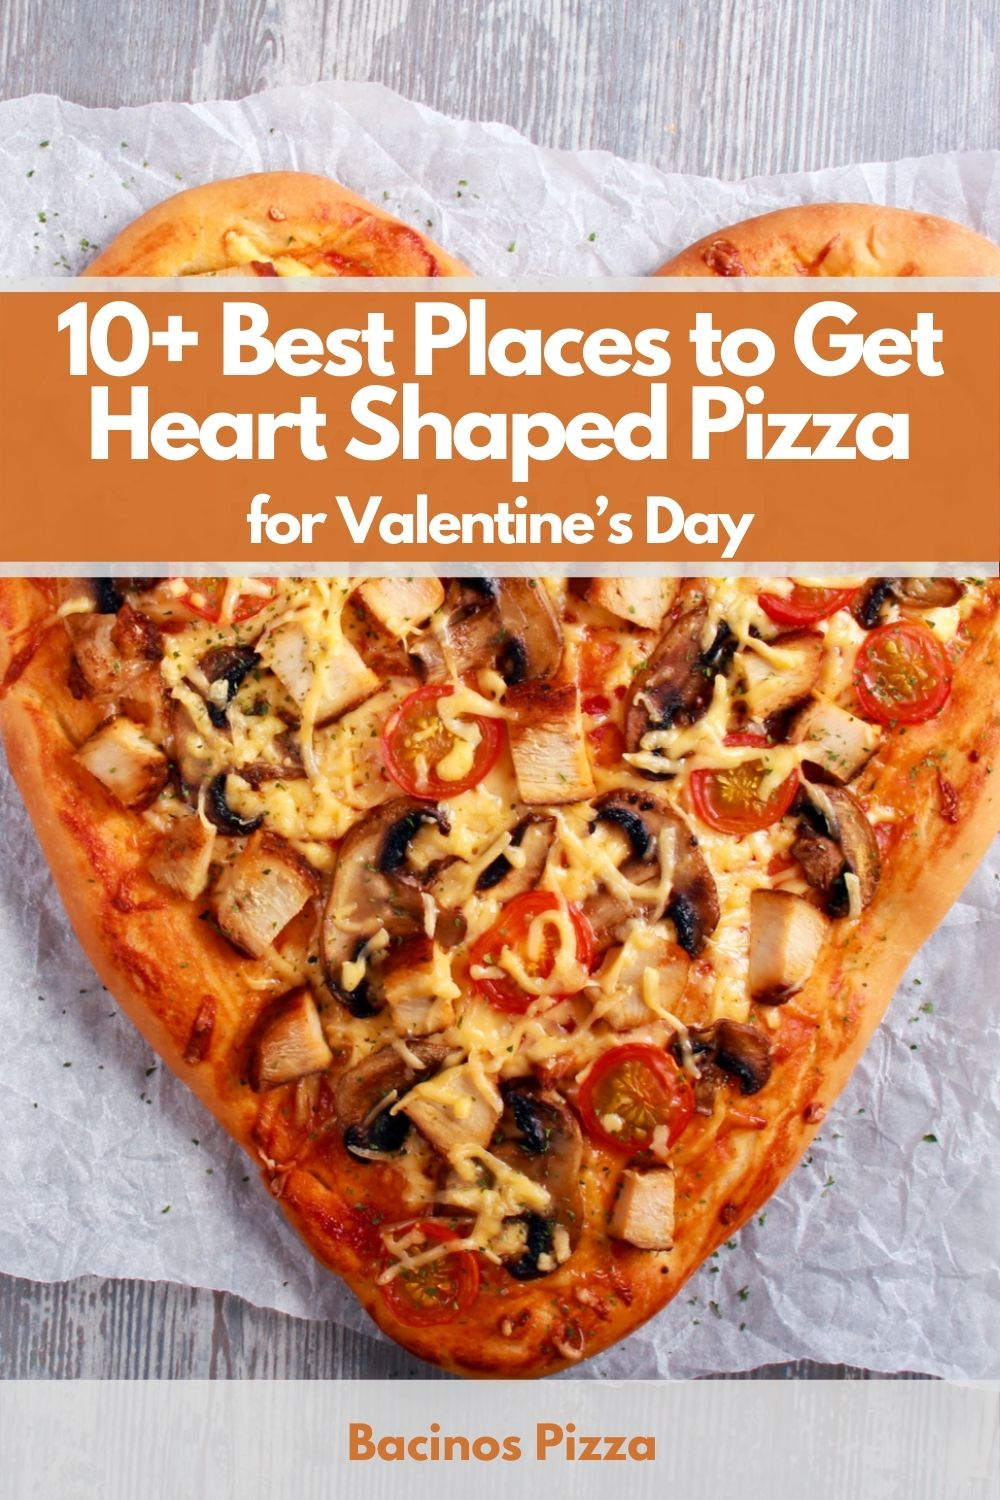 10+ Best Places to Get Heart Shaped Pizza for Valentine's Day pin 2